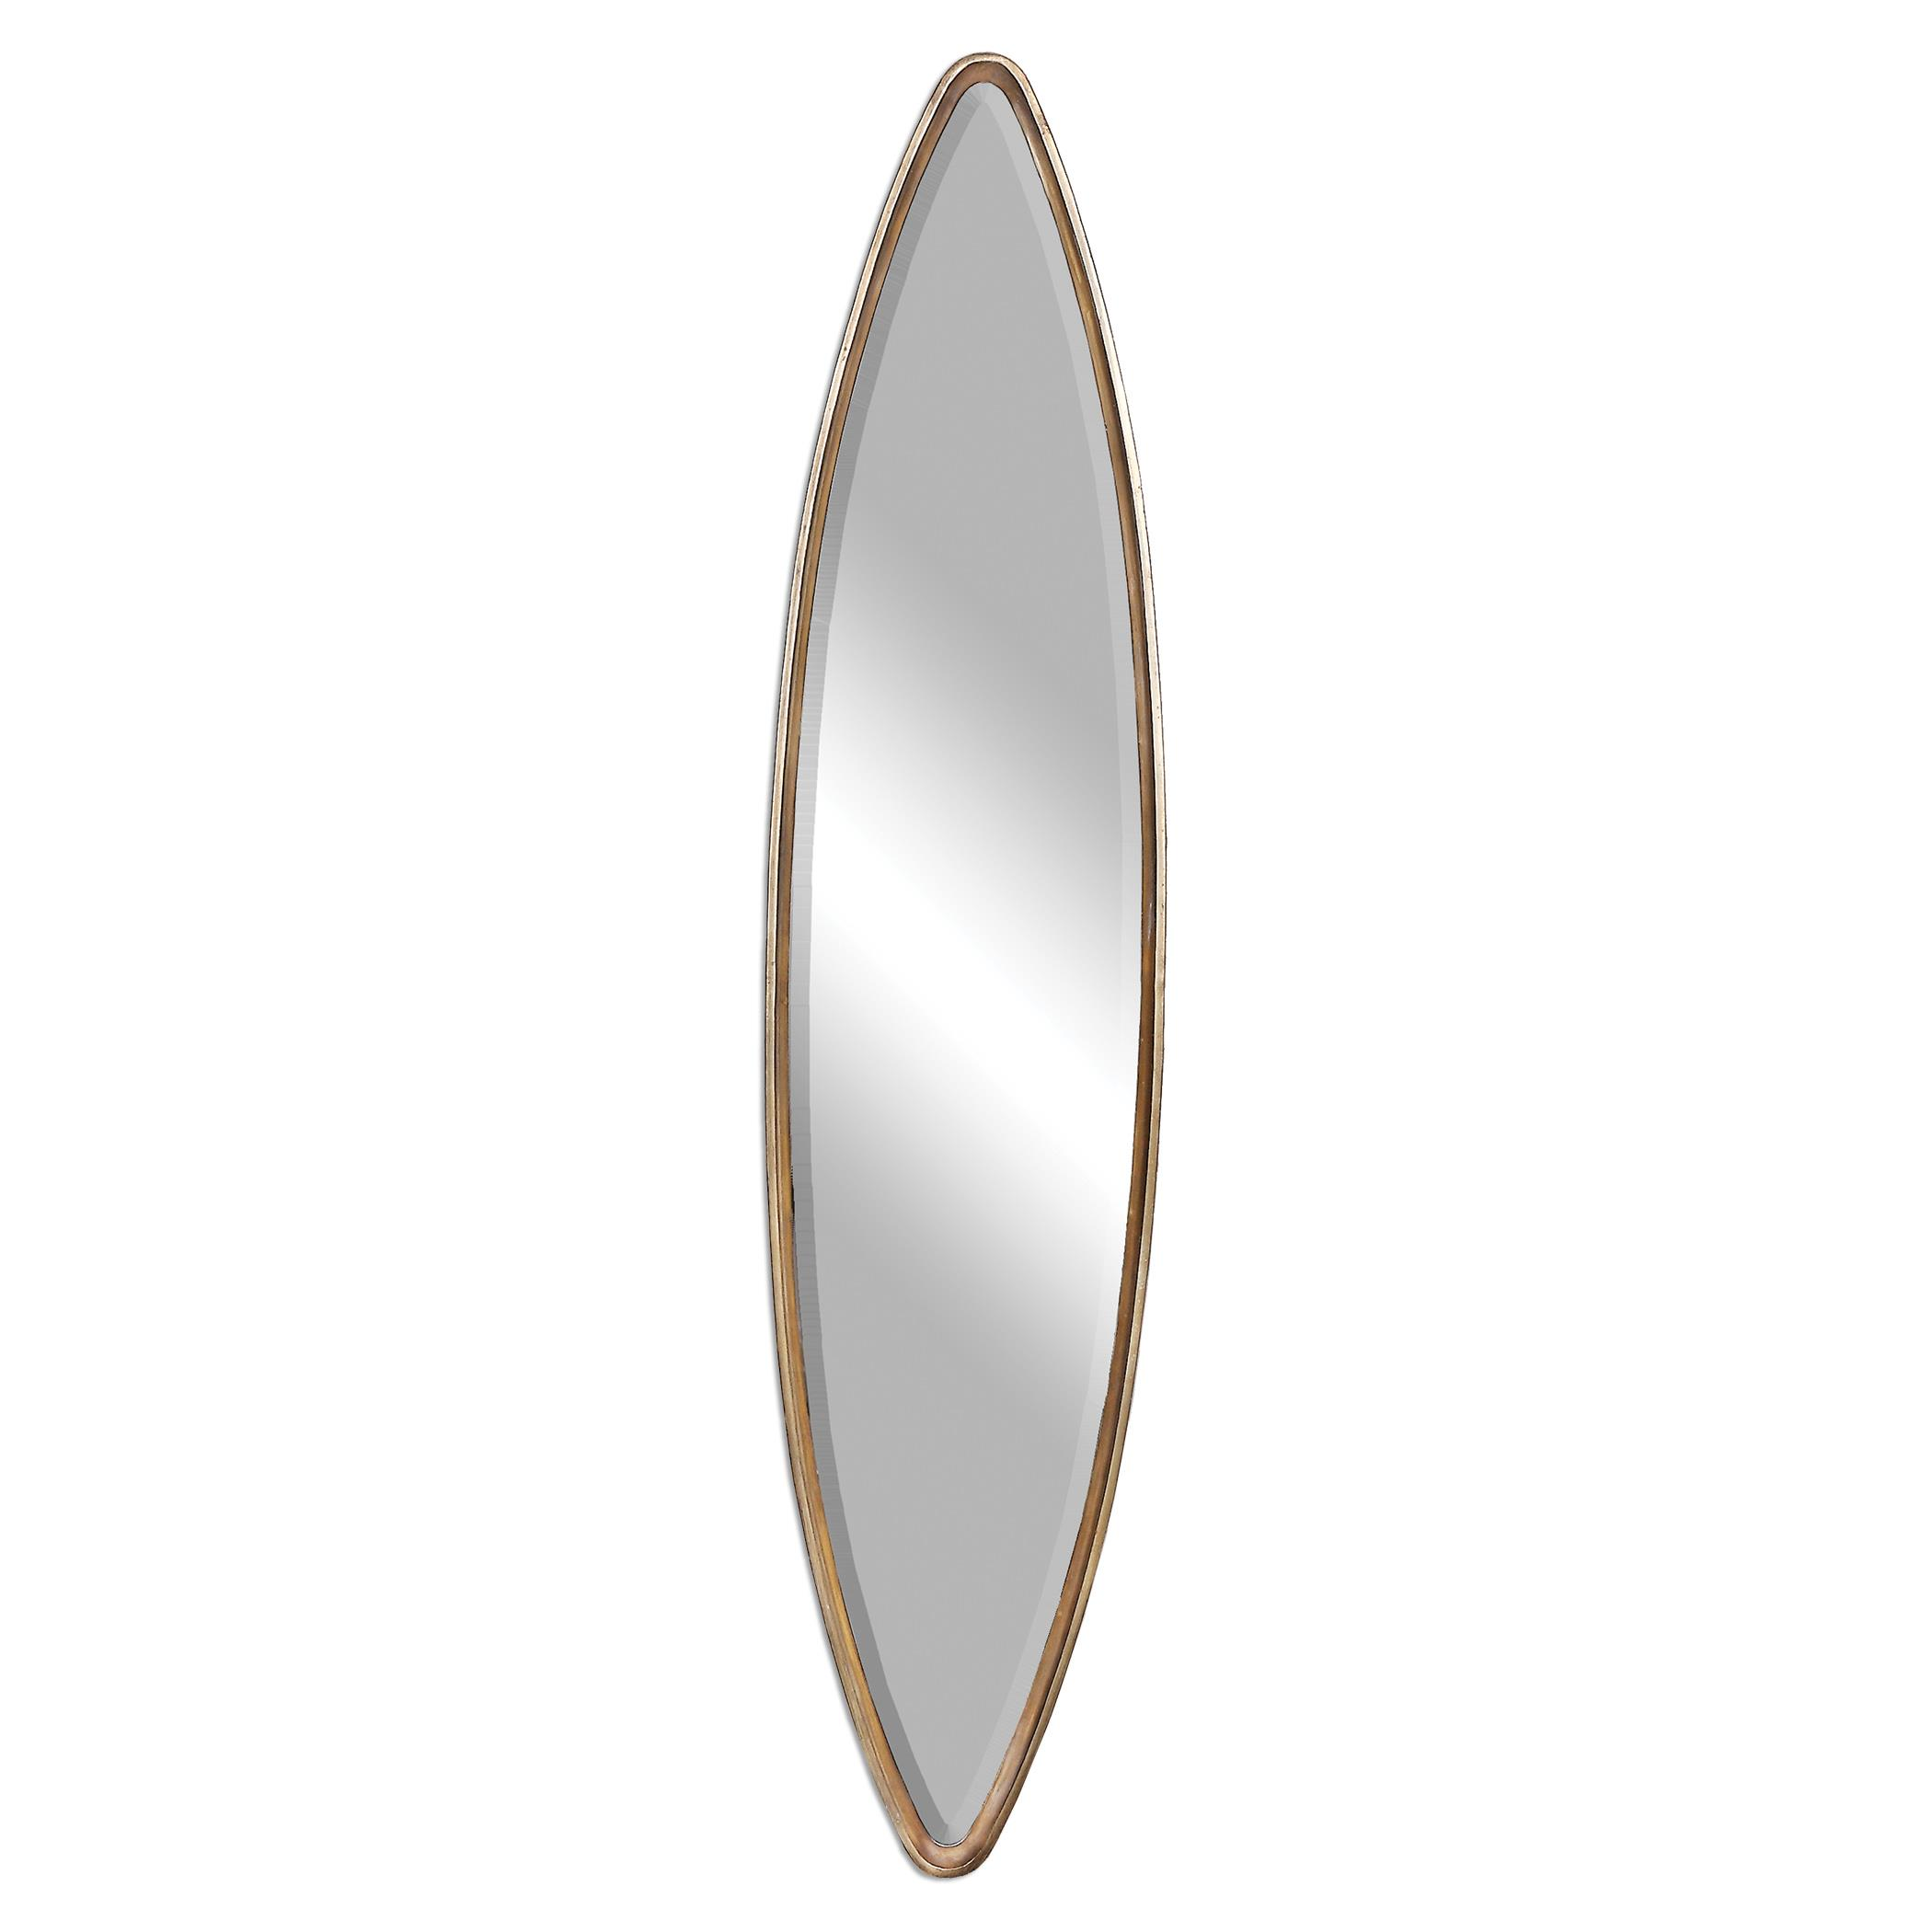 Uttermost Mirrors Belsito Oxidized Gold Oval Mirror - Item Number: 12938